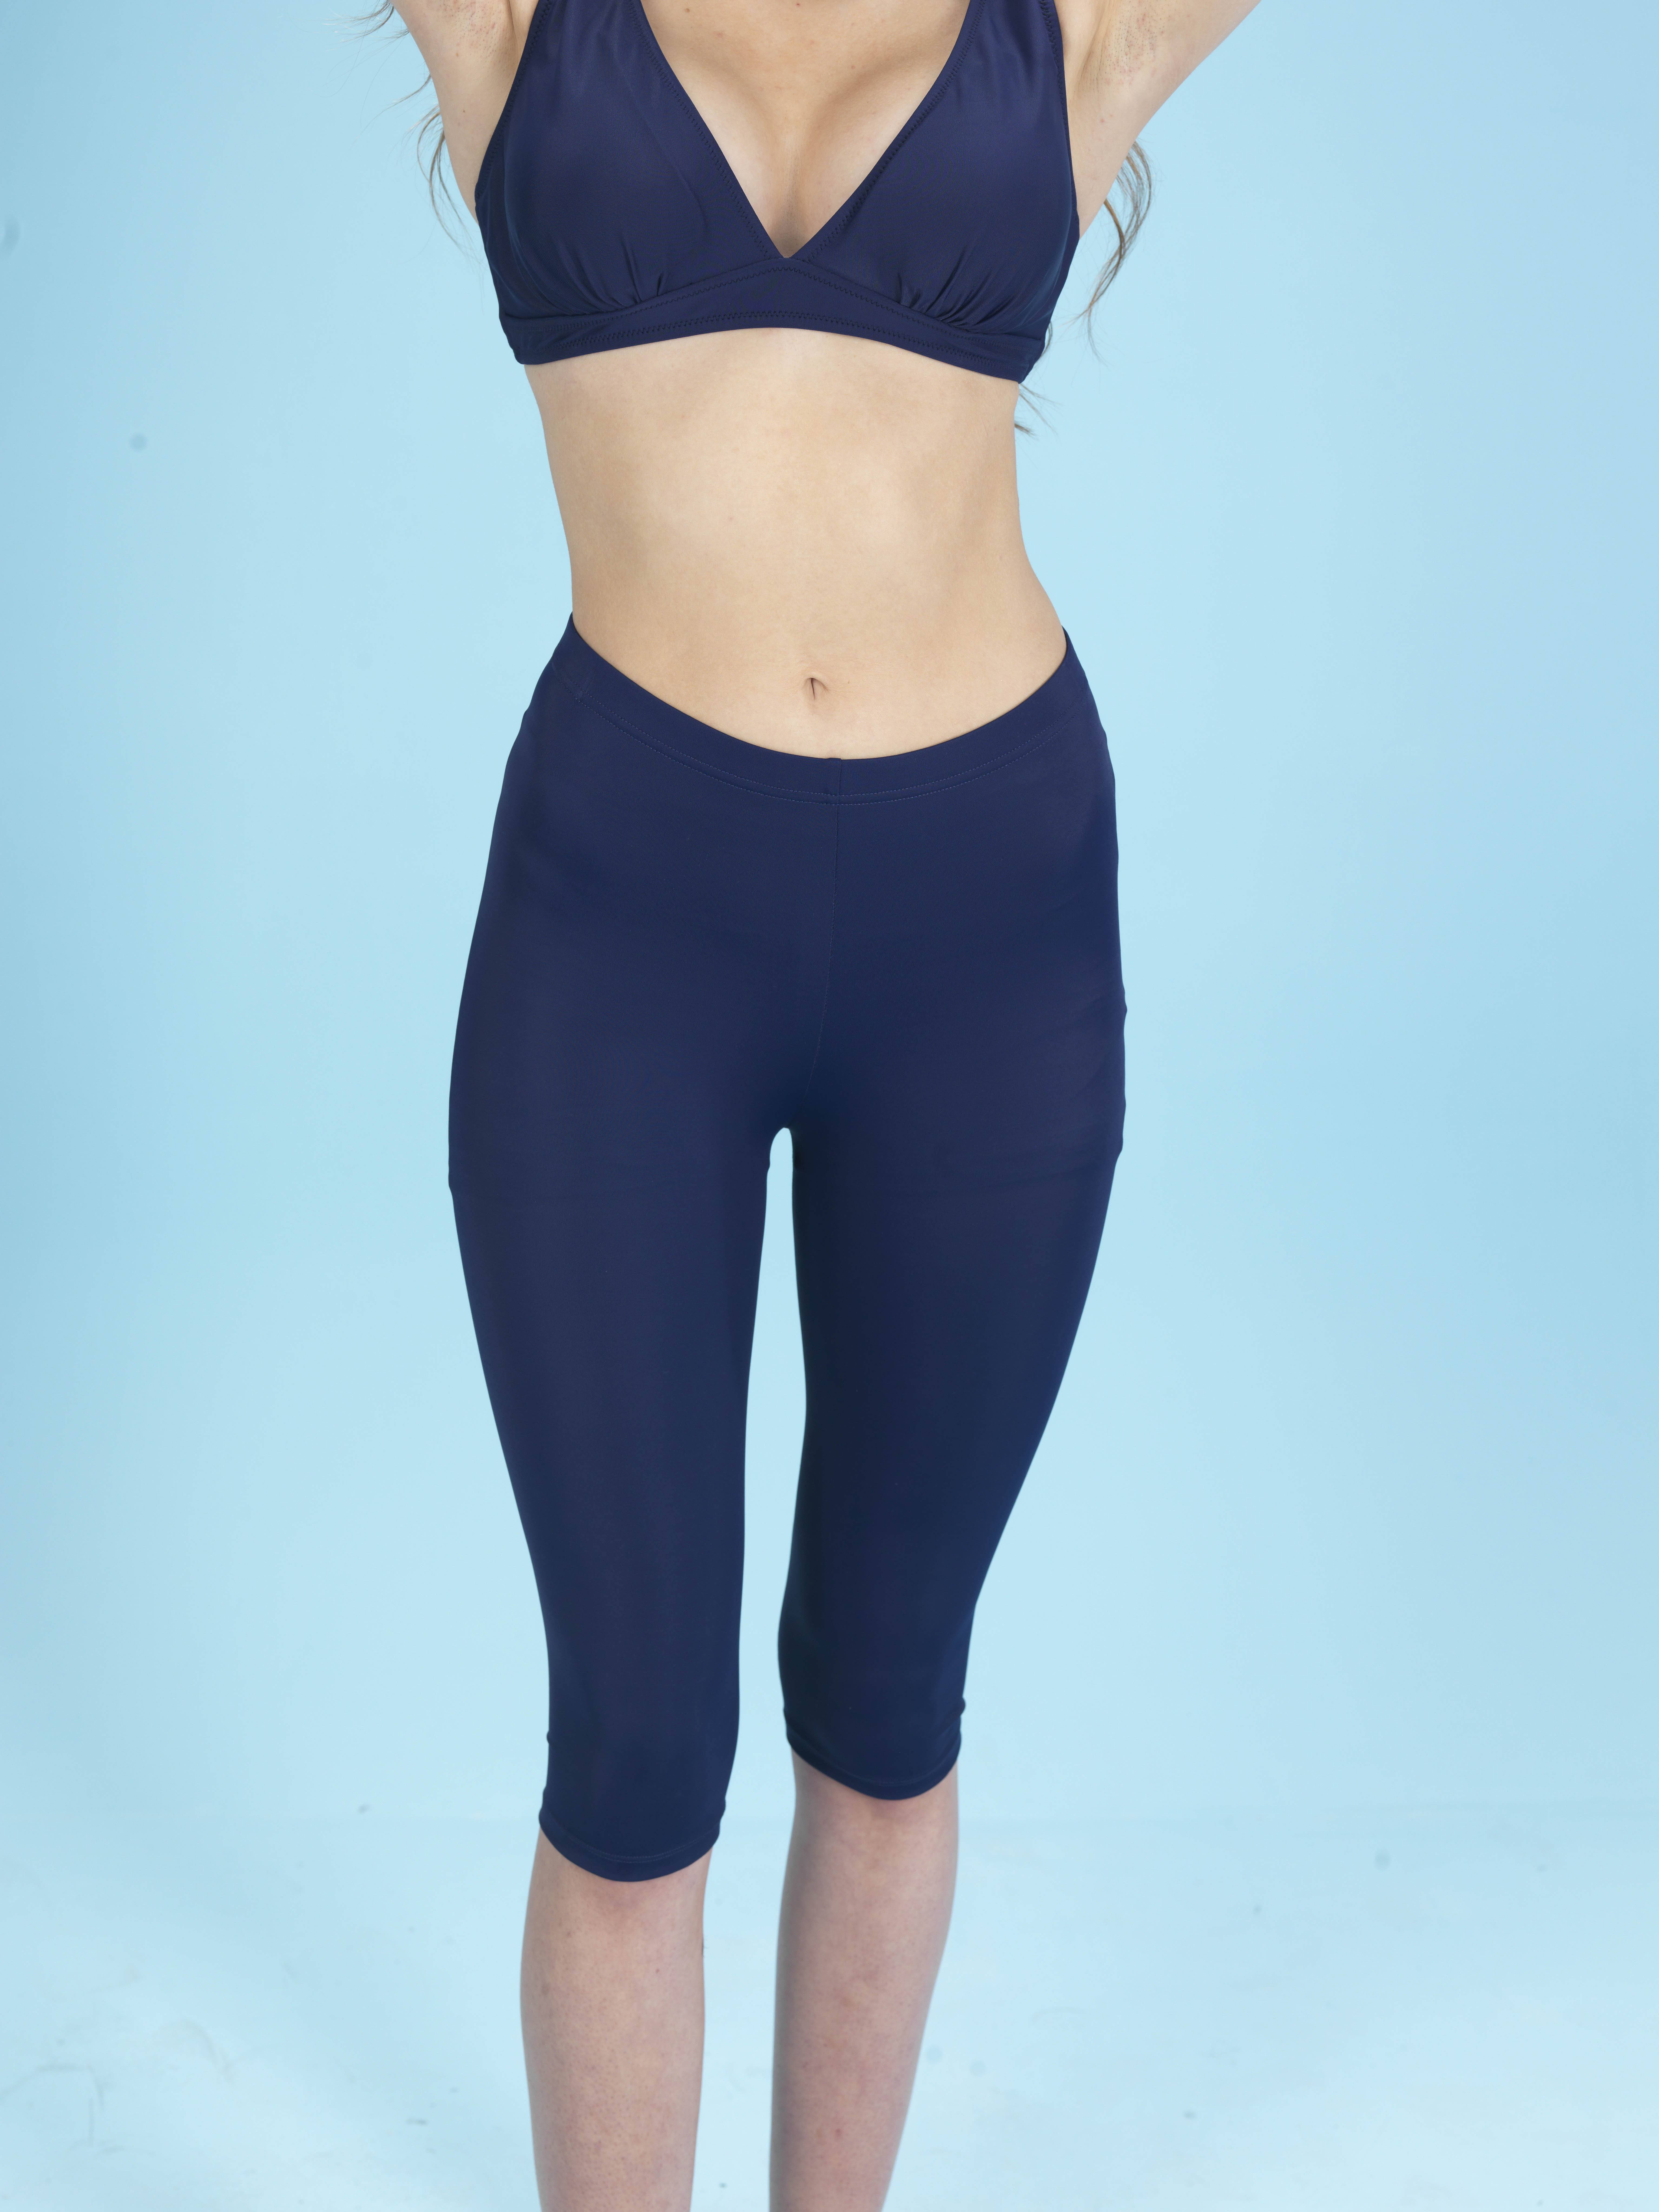 Capri Sportlegging.Capri Zwem En Sportlegging Blauw Elif Boutique